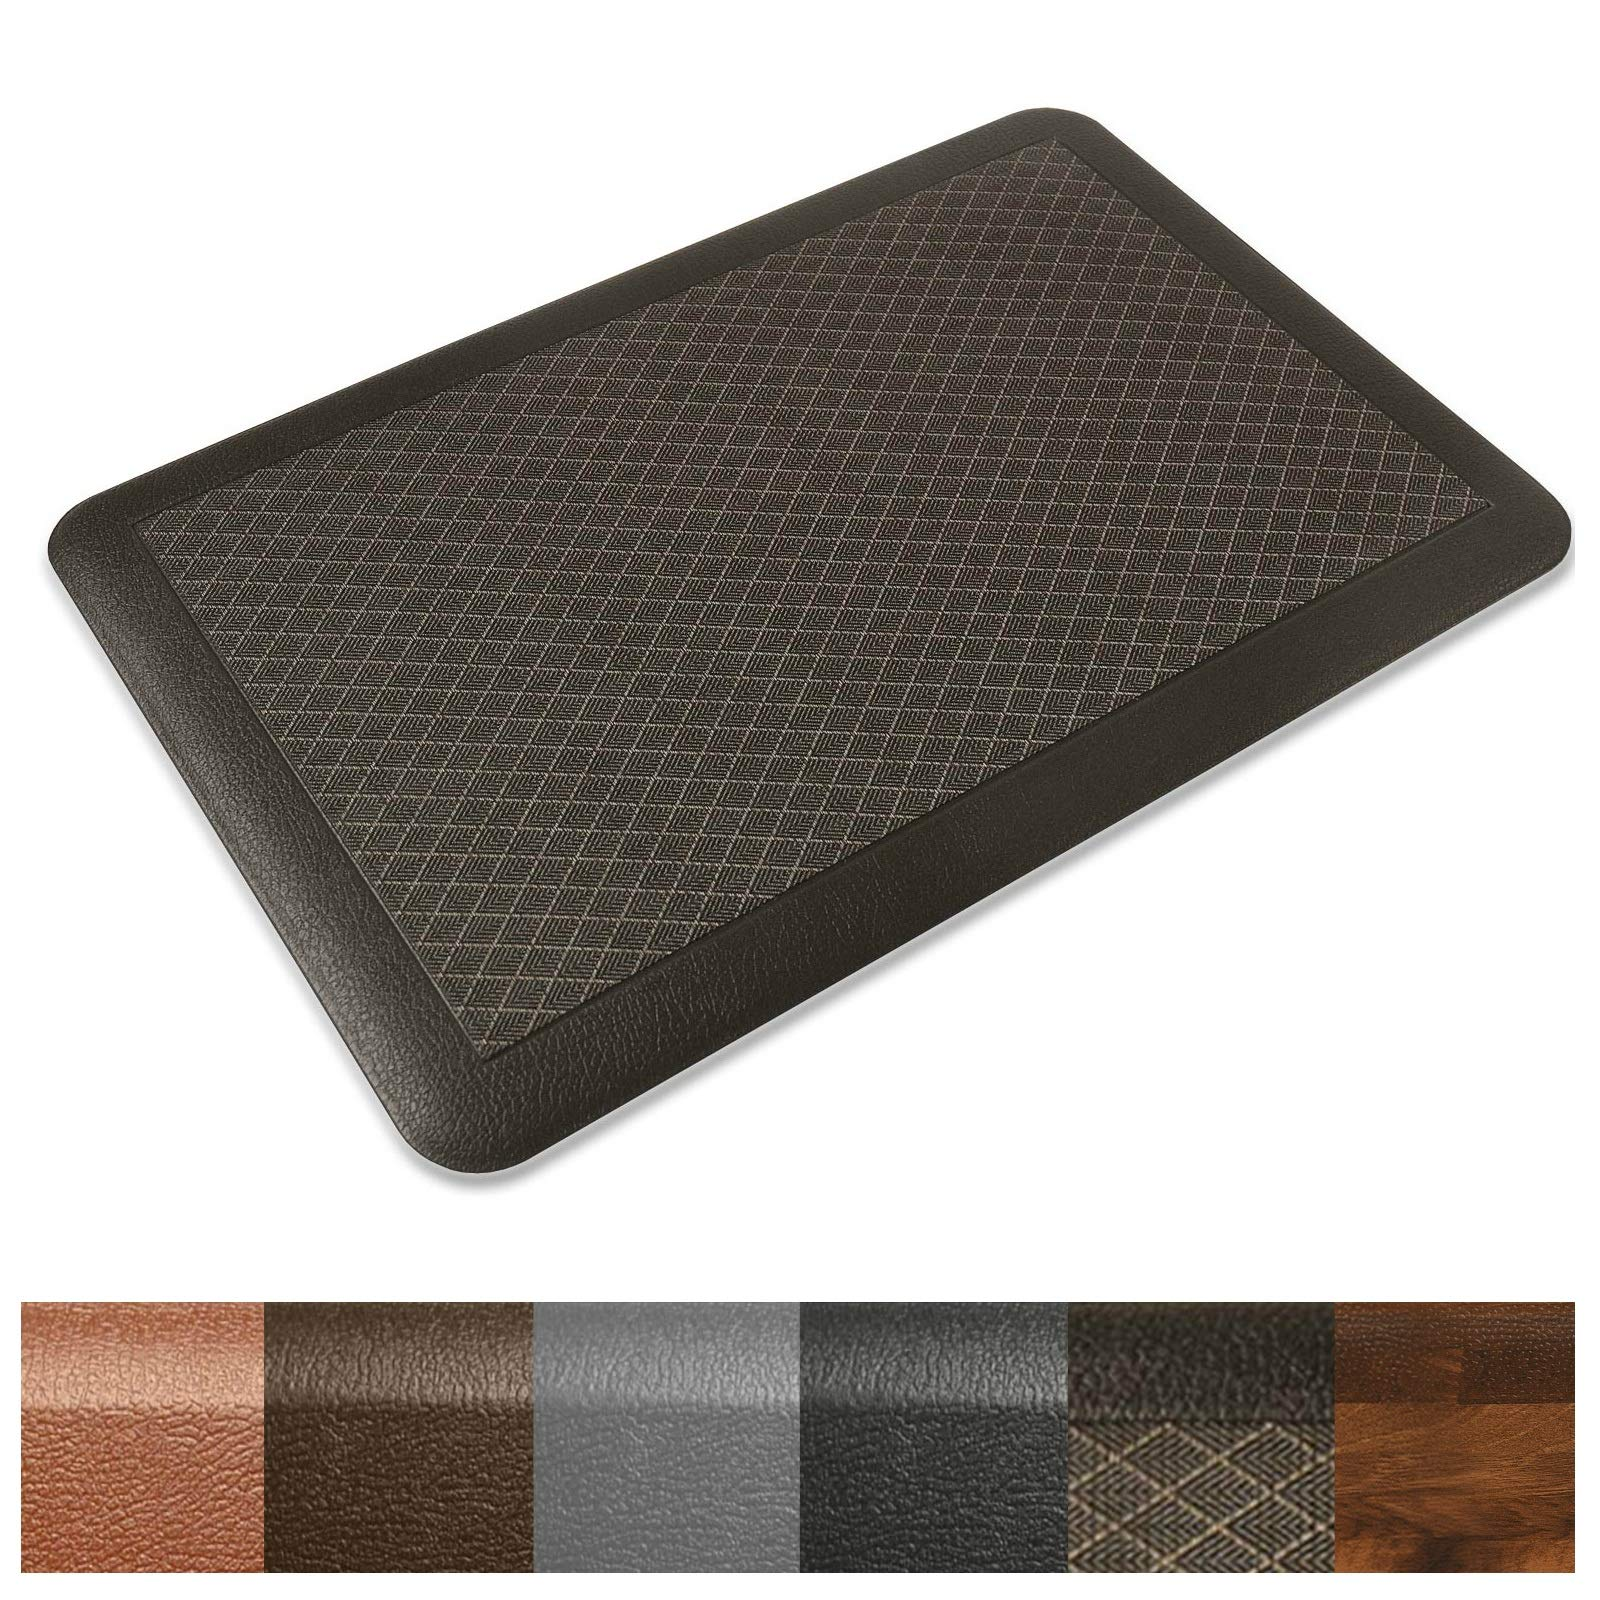 Kitchen Mat | Anti Fatigue Mat, 3/4 Thick | Ergonomically Engineered, Non-Slip, Waterproof | 20''x30'' - Dark Brown